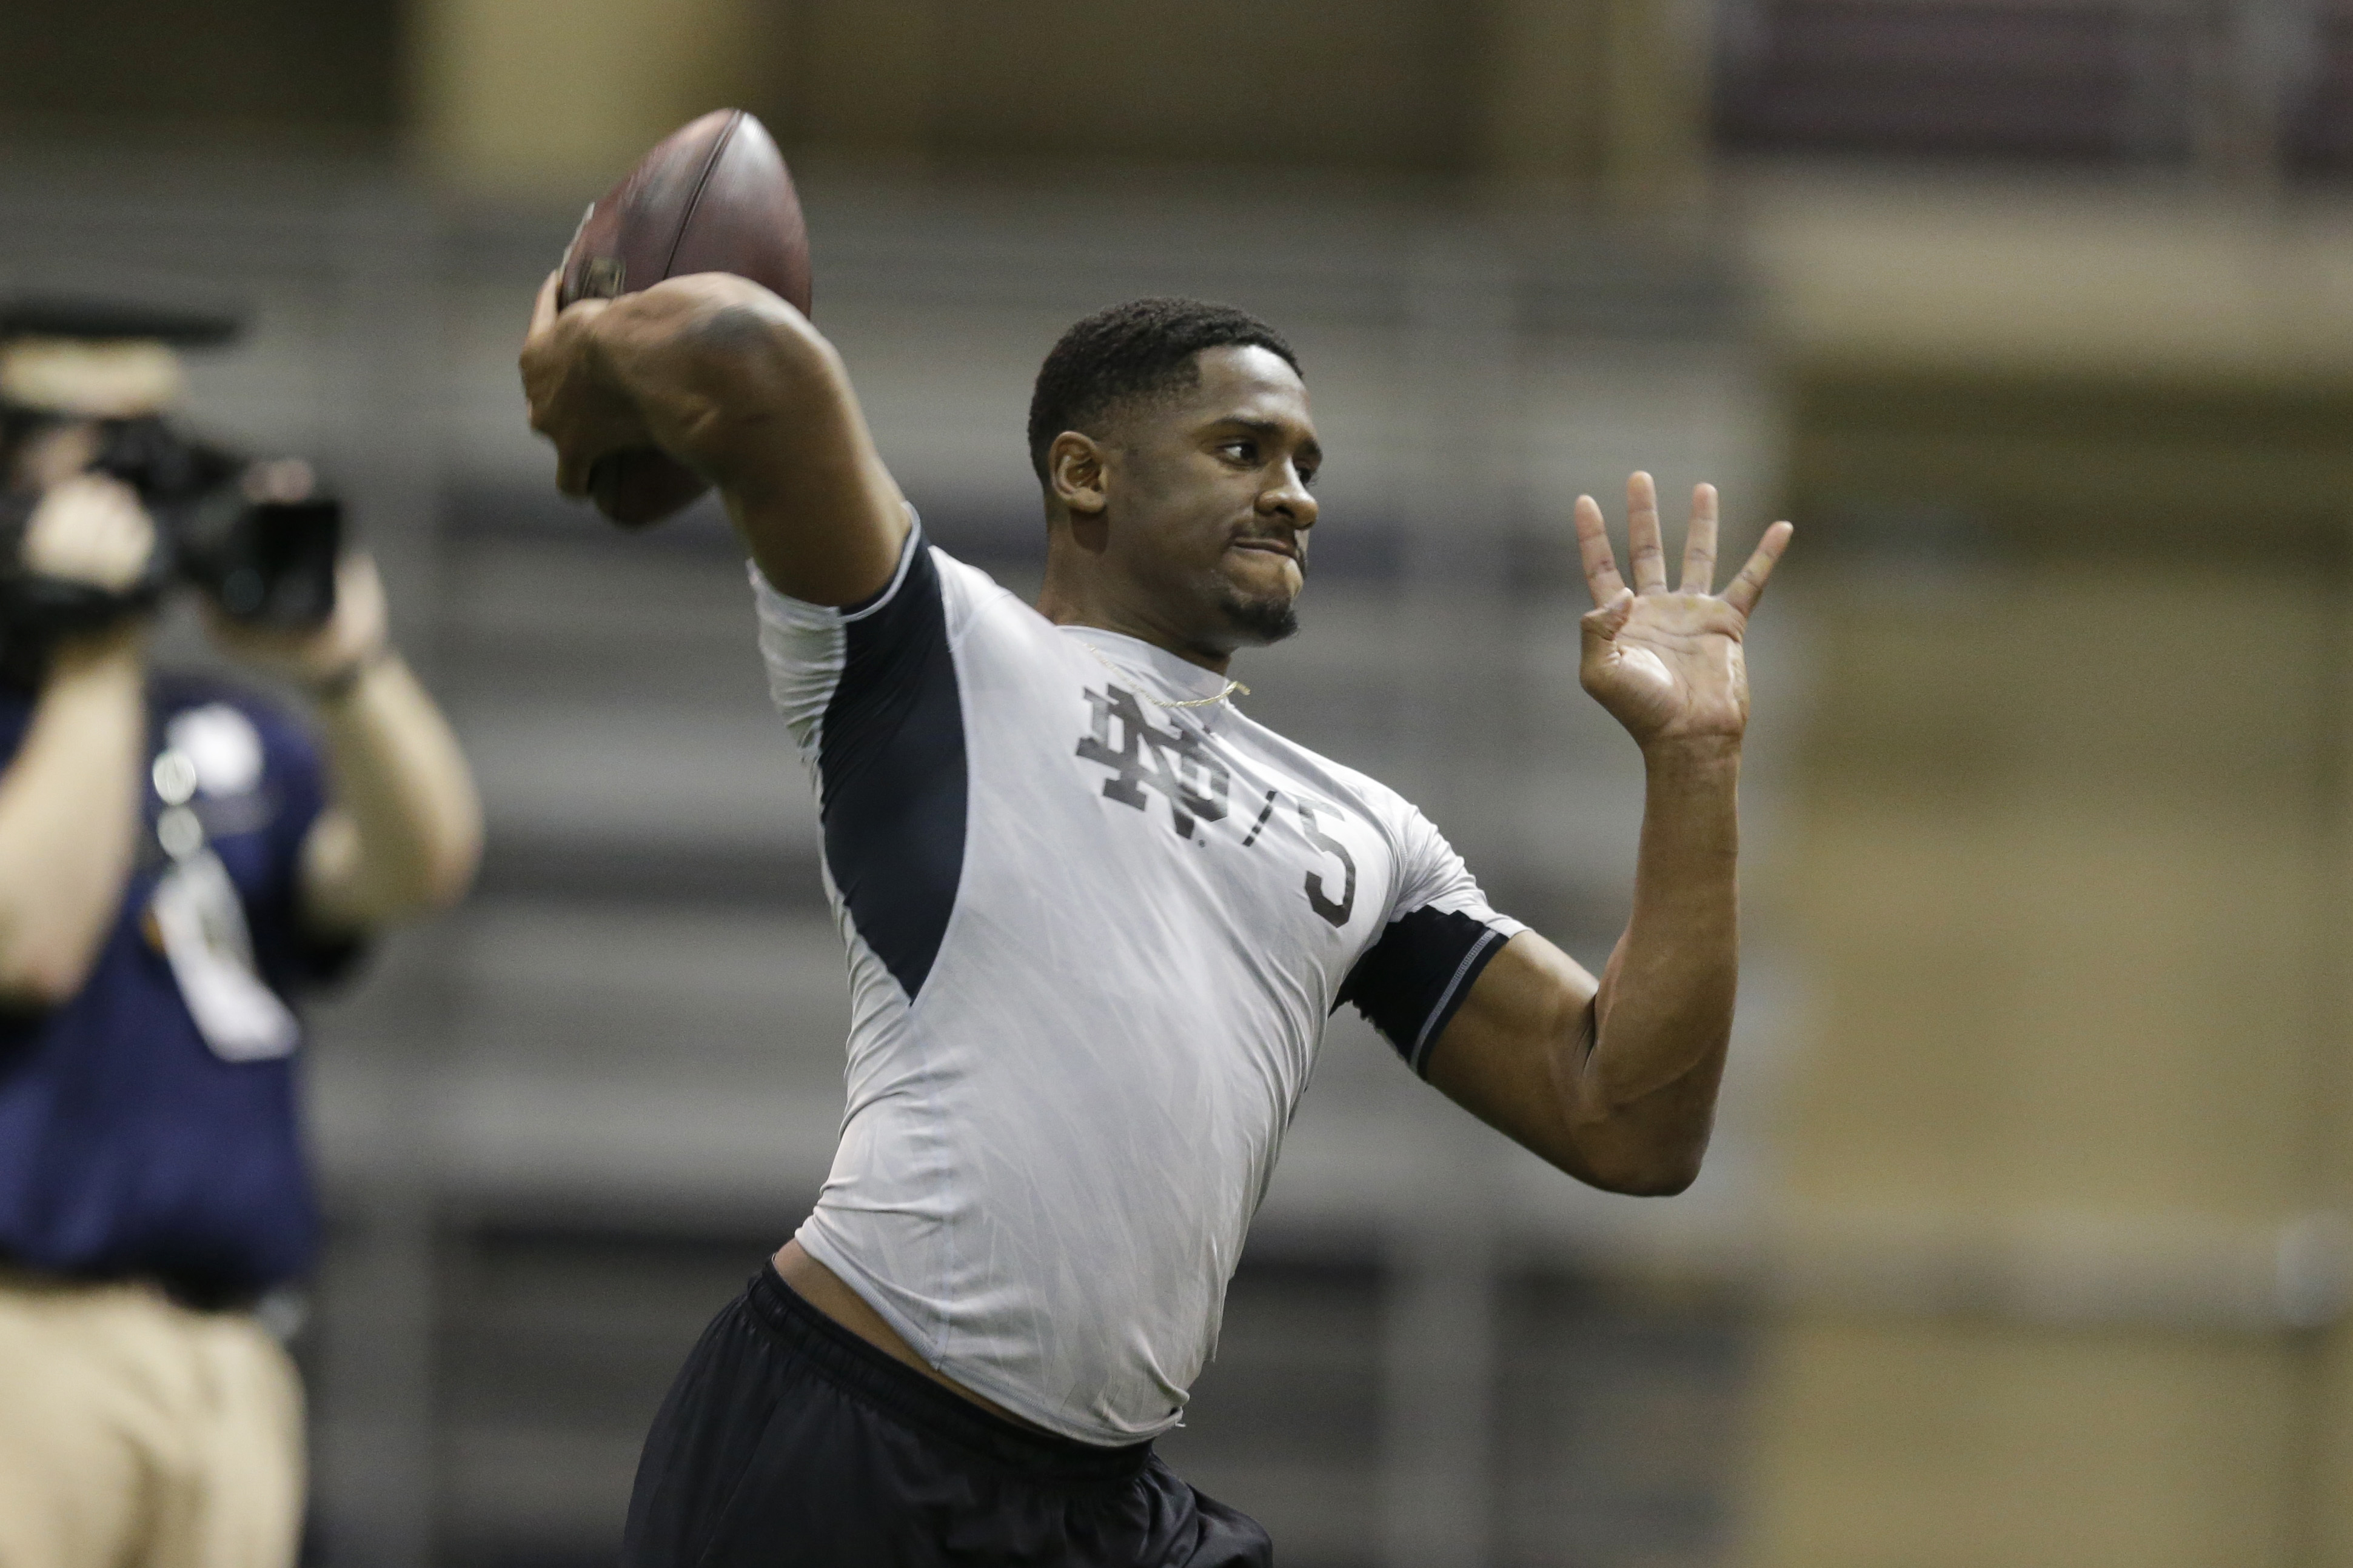 FILE - In this March 31, 2016, file photo, Notre Dame's Everett Golson throws during a drill during Notre Dame's NFL football Pro Day in South Bend, Ind. The former Notre Dame and Florida State quarterback, who wasnt even invited to leagues annual scoutin